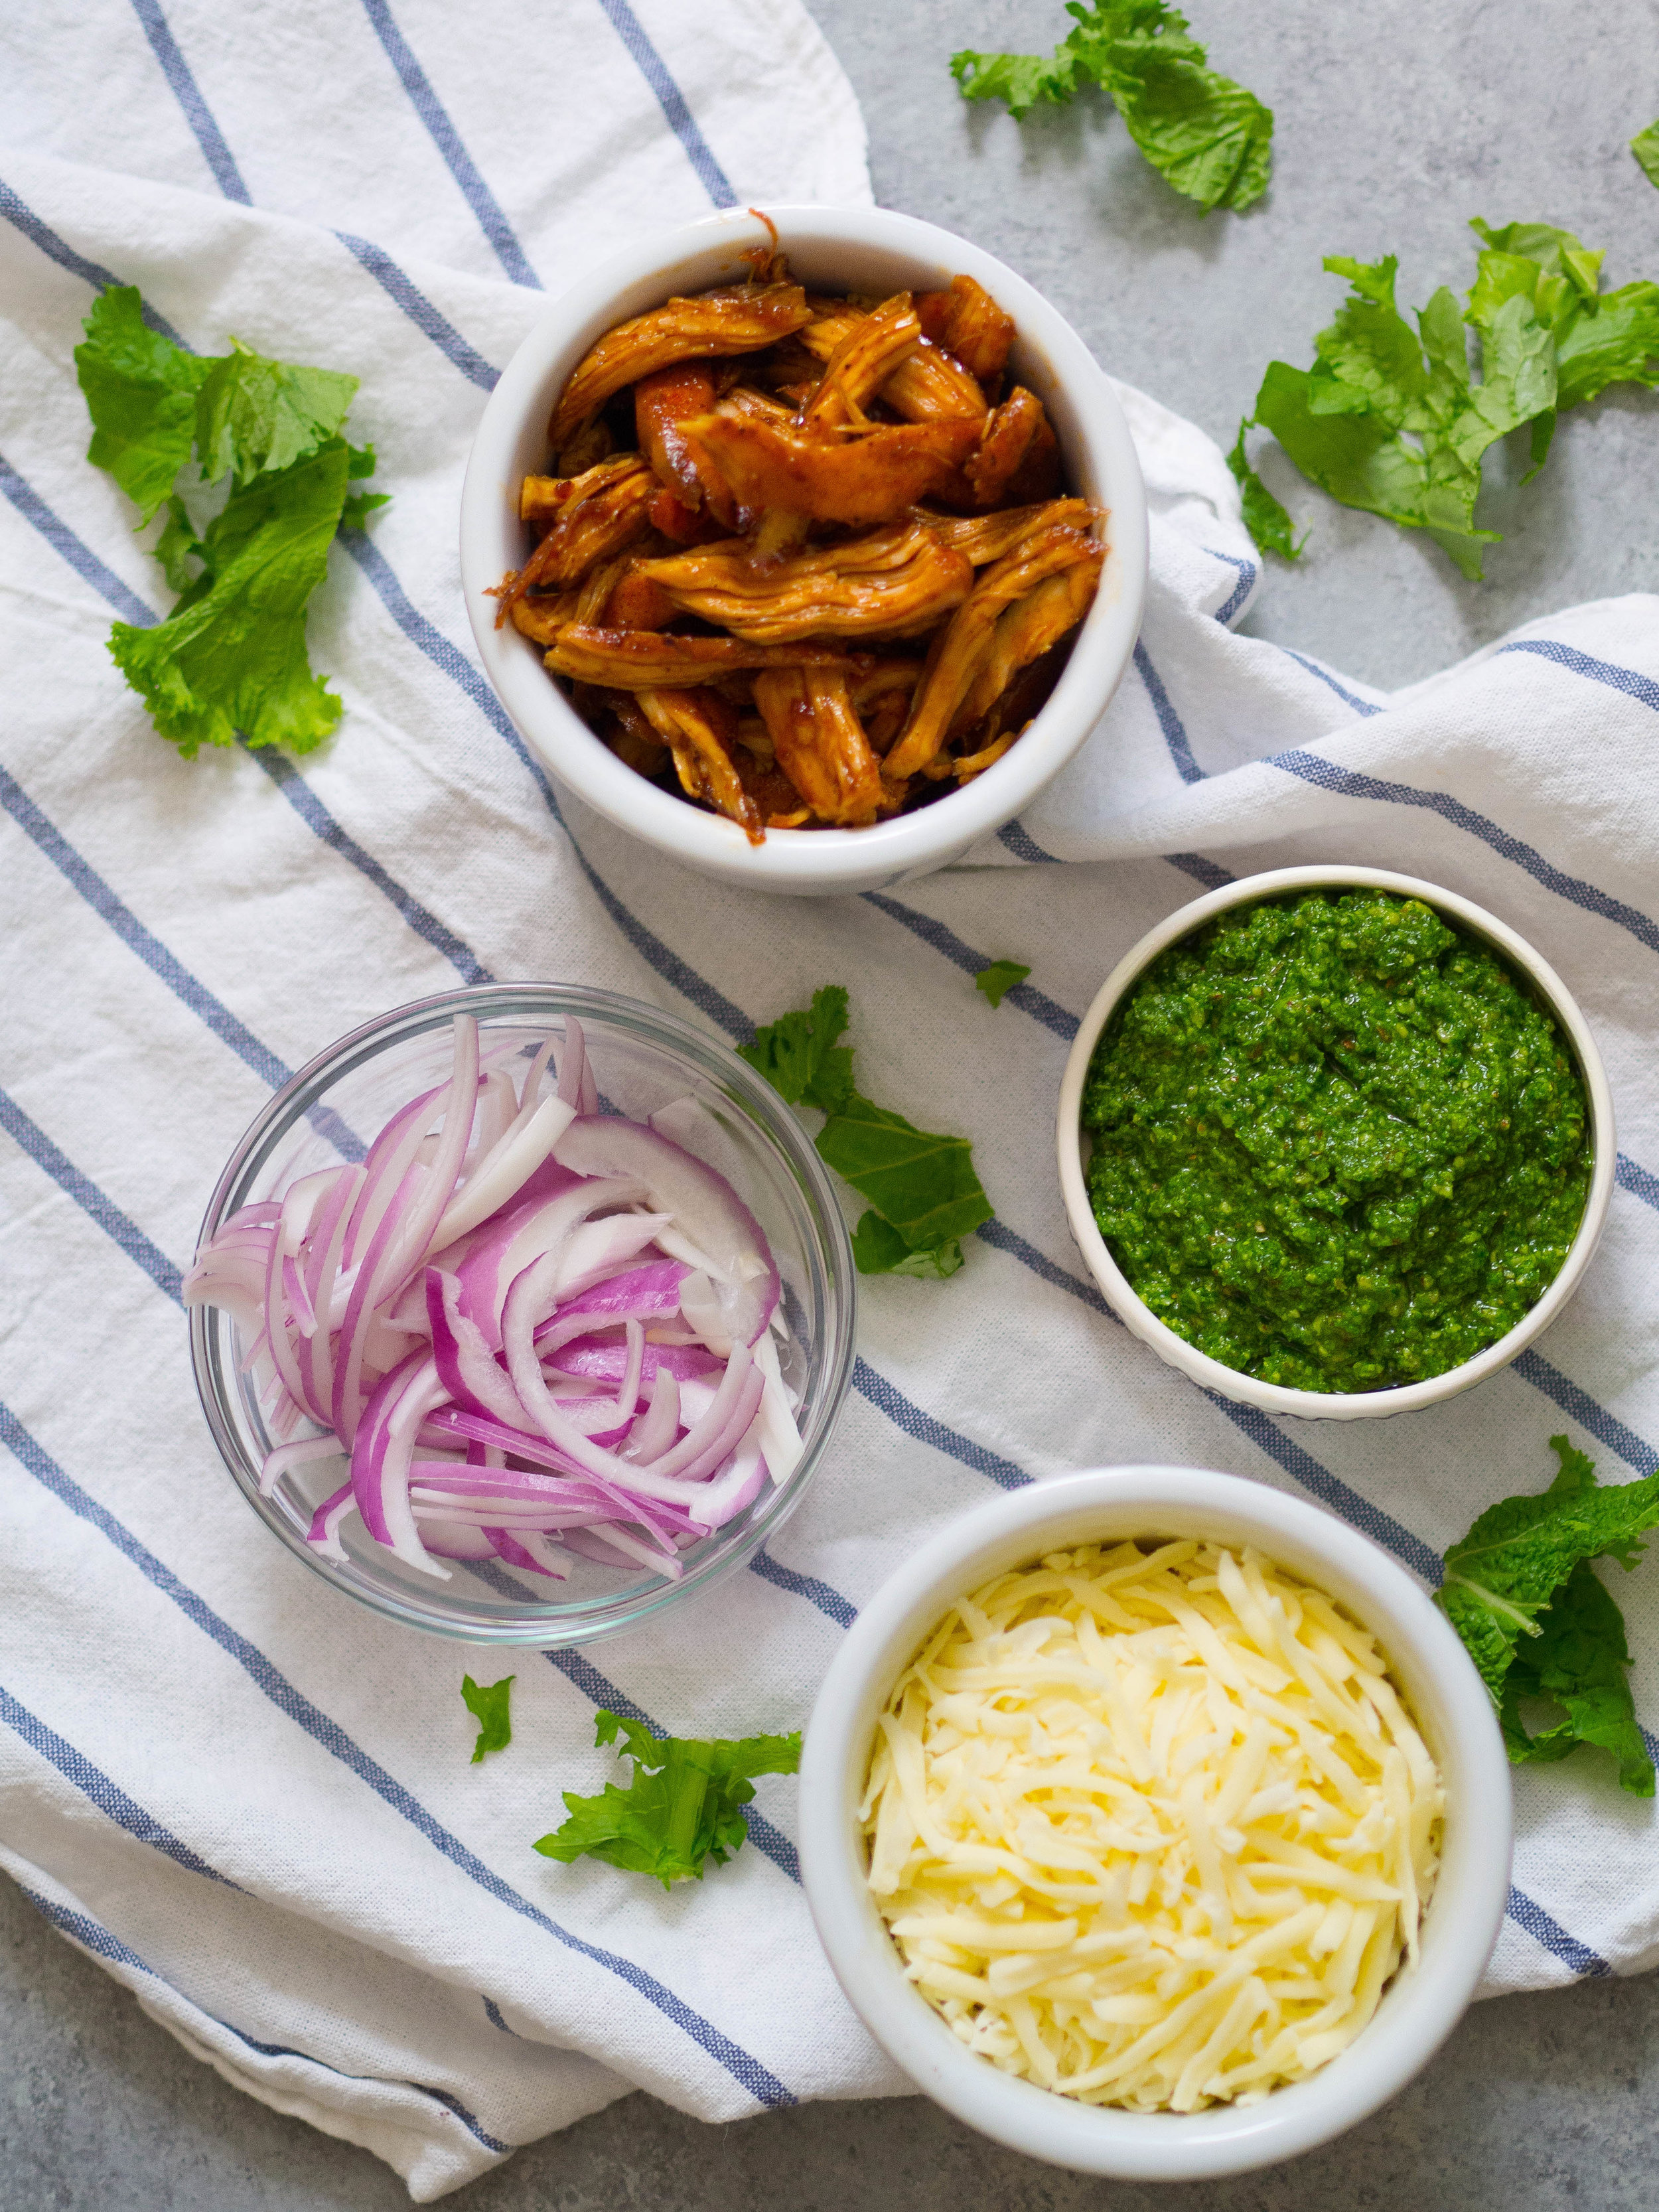 Ingredients for Barbecue Chicken Pizza with Mustard Green Pesto